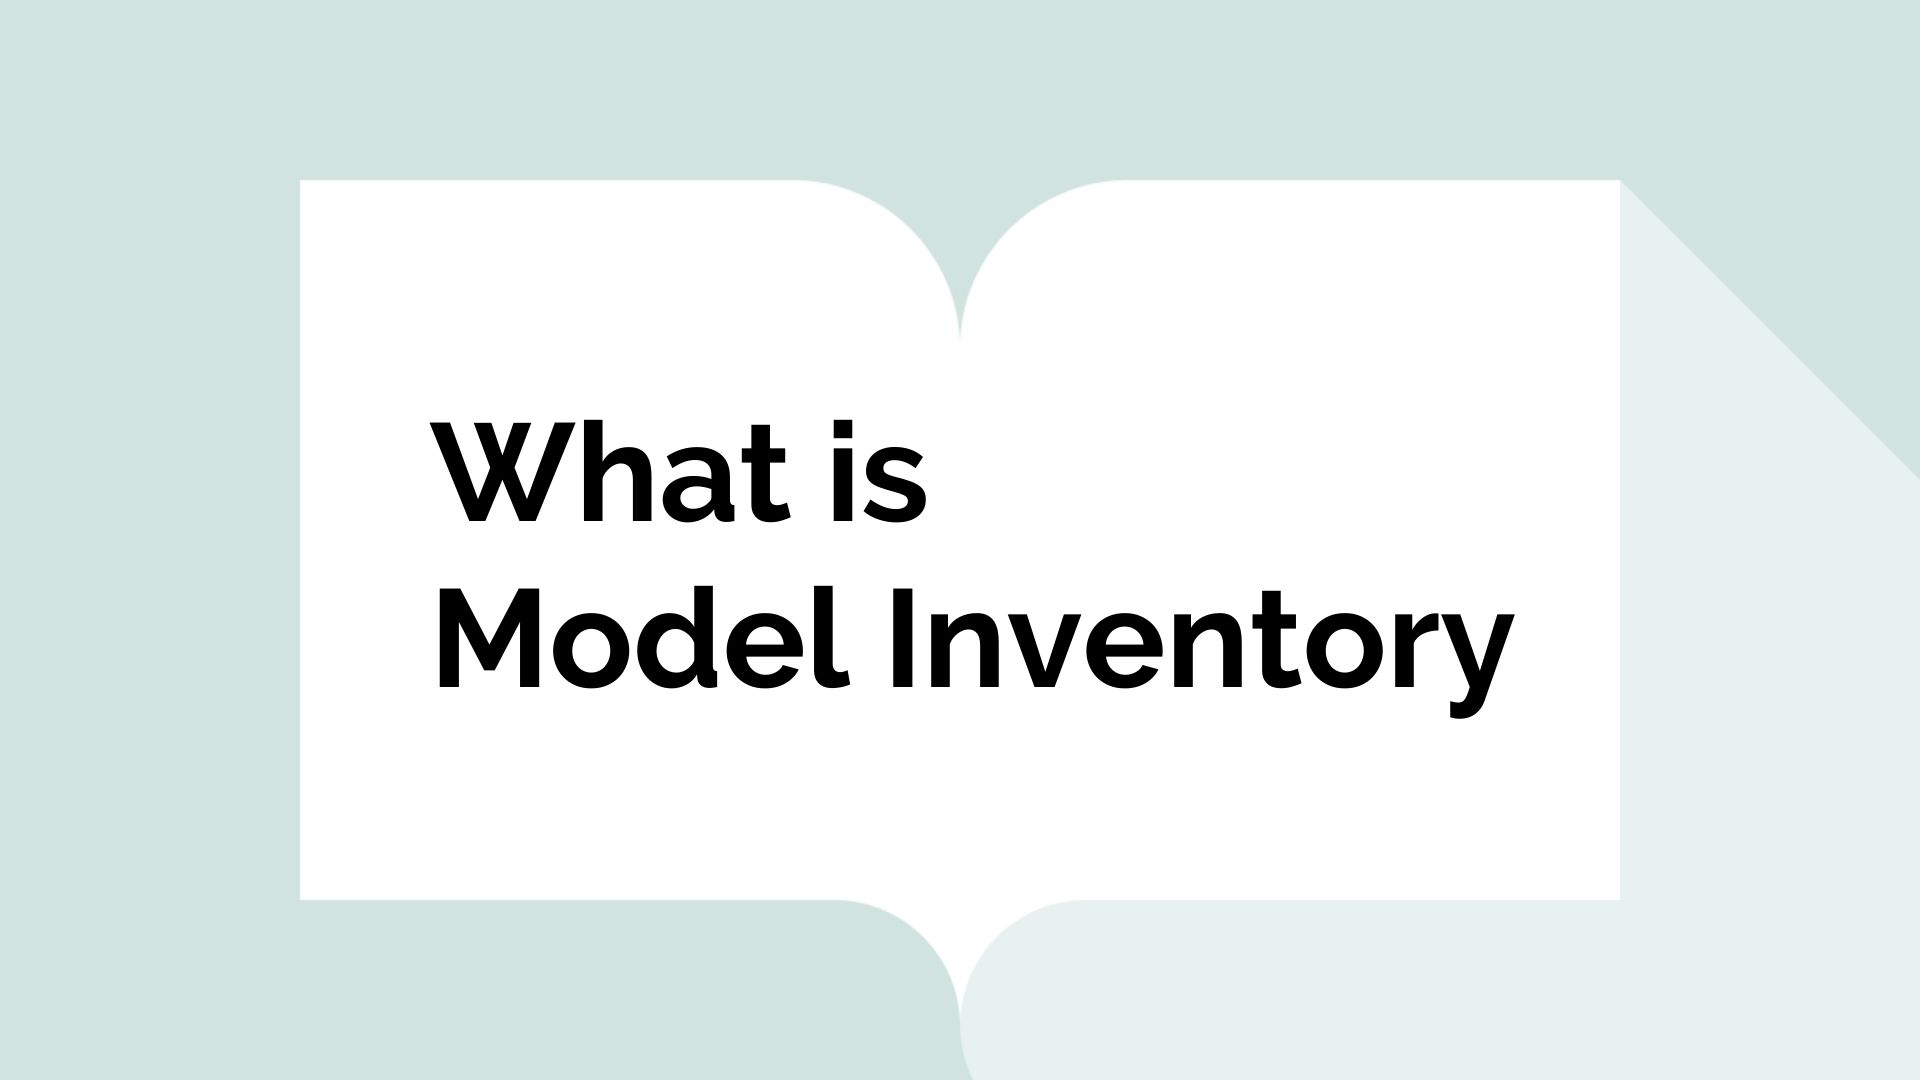 What is Model Inventory?